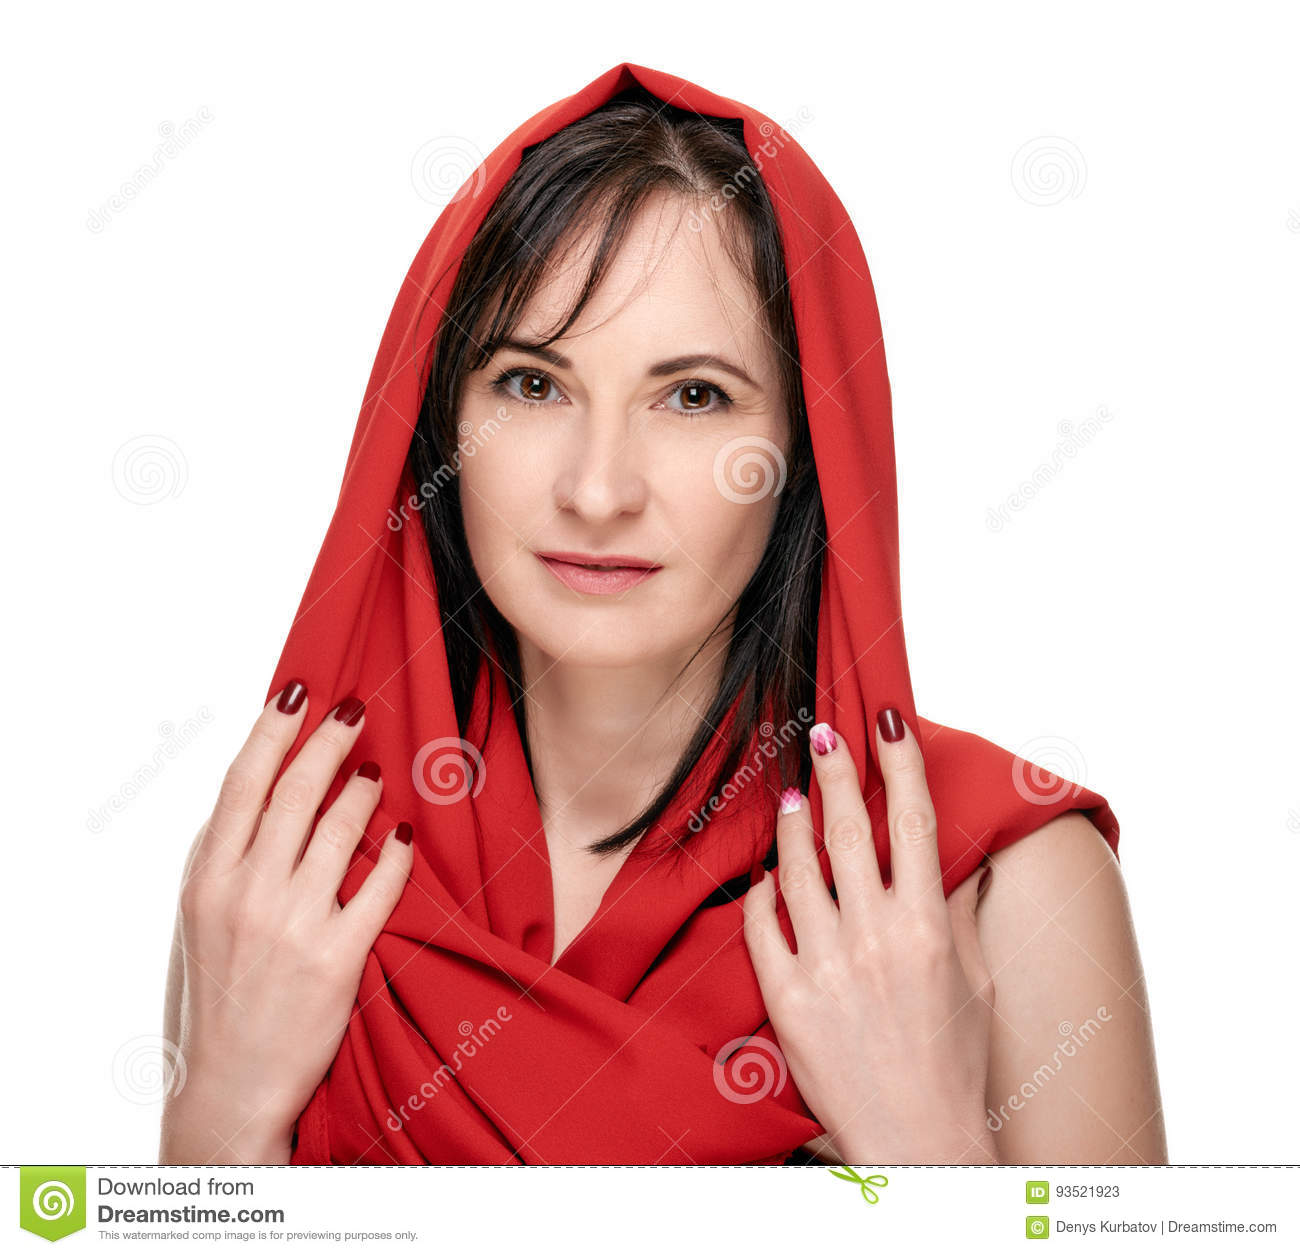 ec79ca2a8ff4a Woman in red headscarf stock image. Image of cosmetic - 93521923